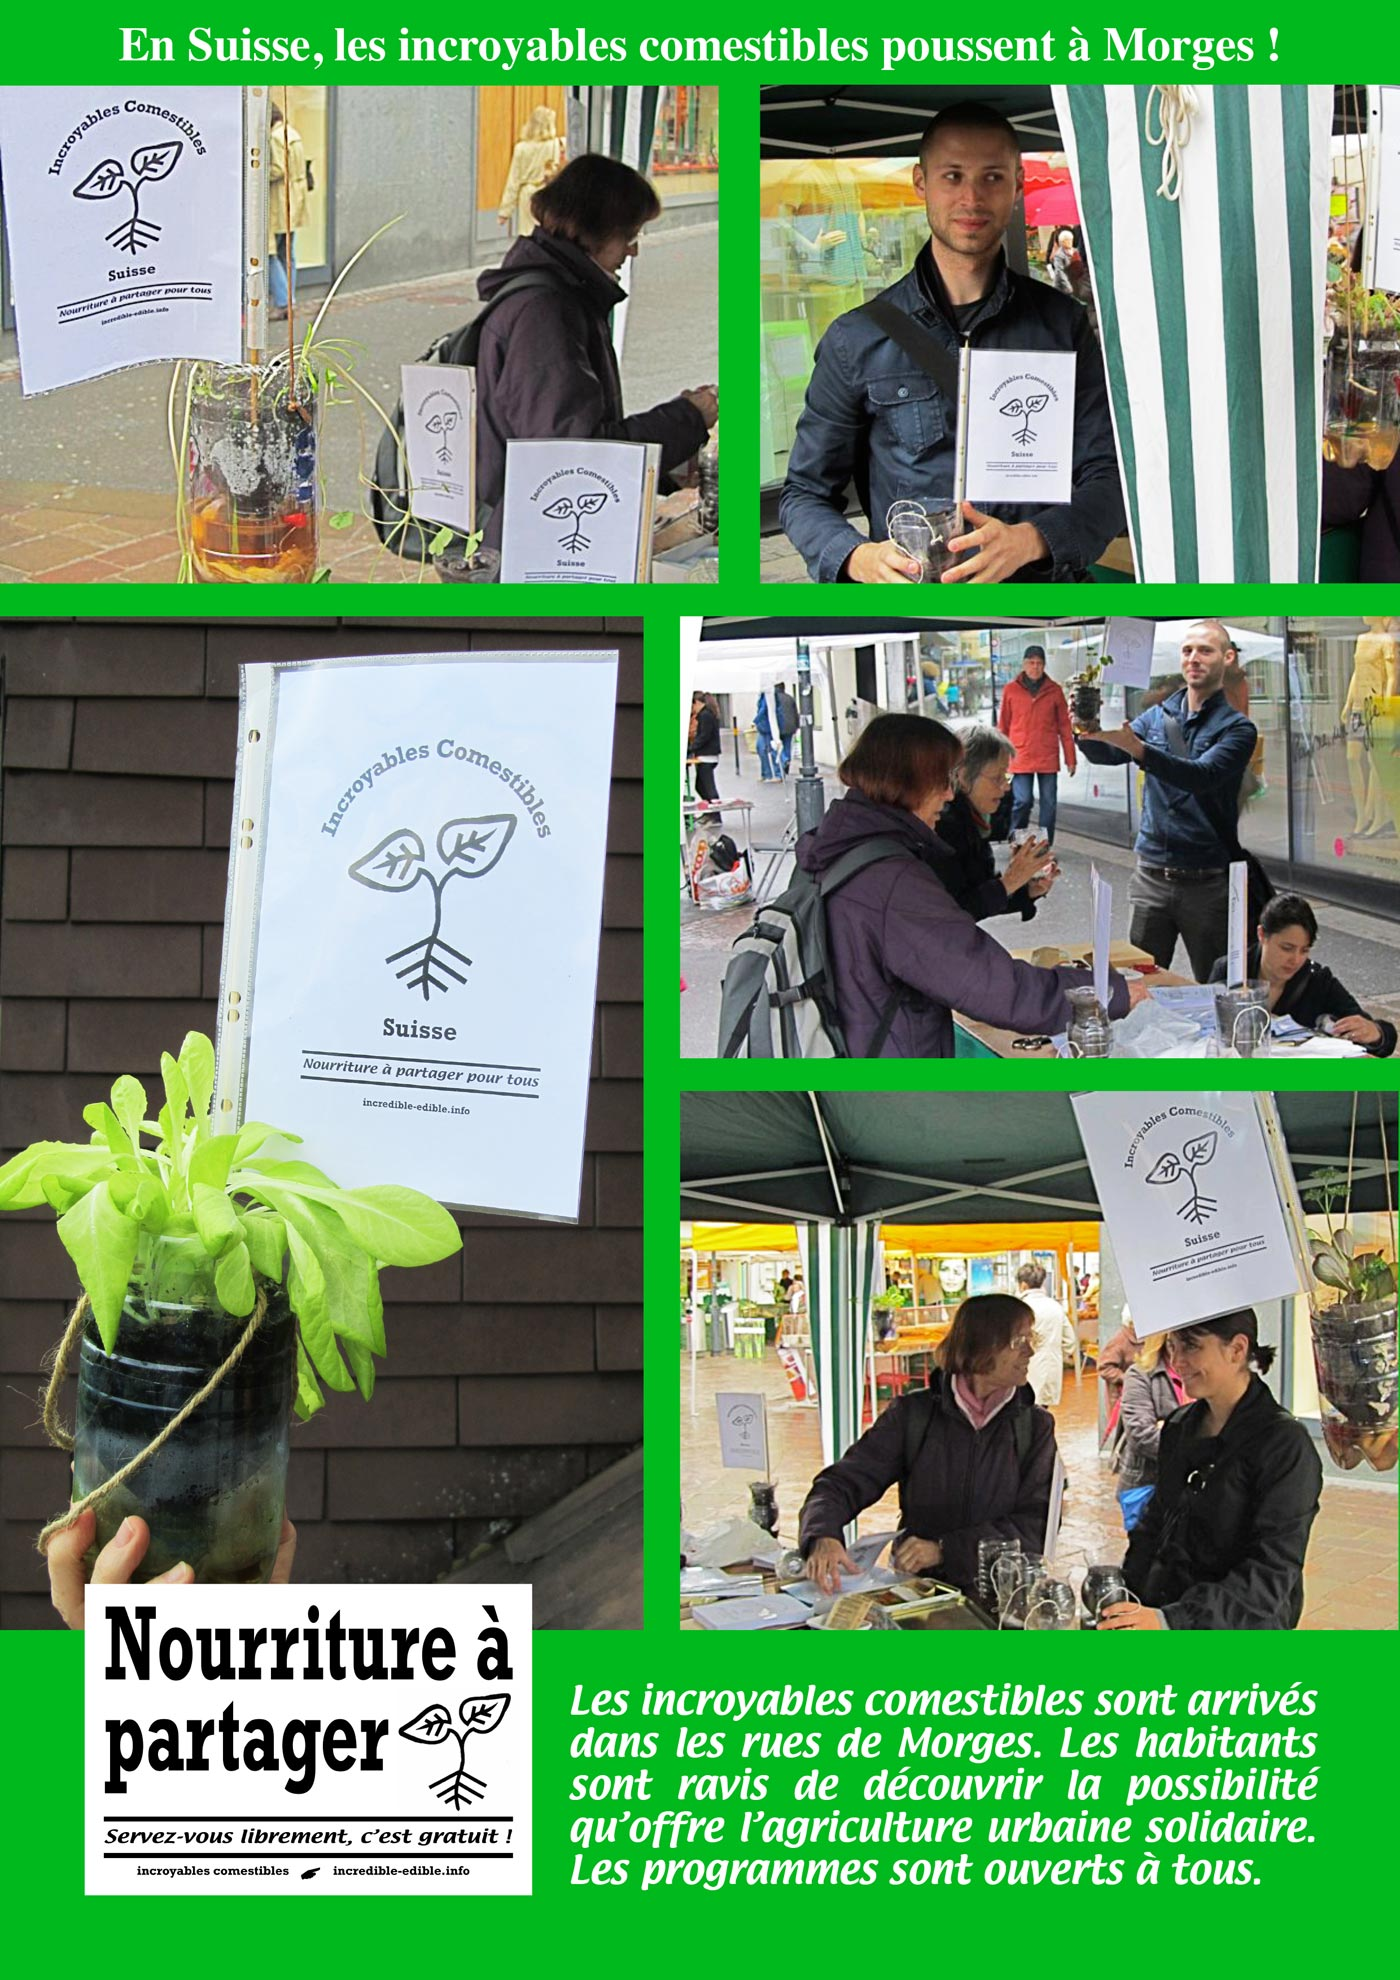 c466_incredible_edible_todmorden_suisse_morges_incroyables_comestibles_w1400